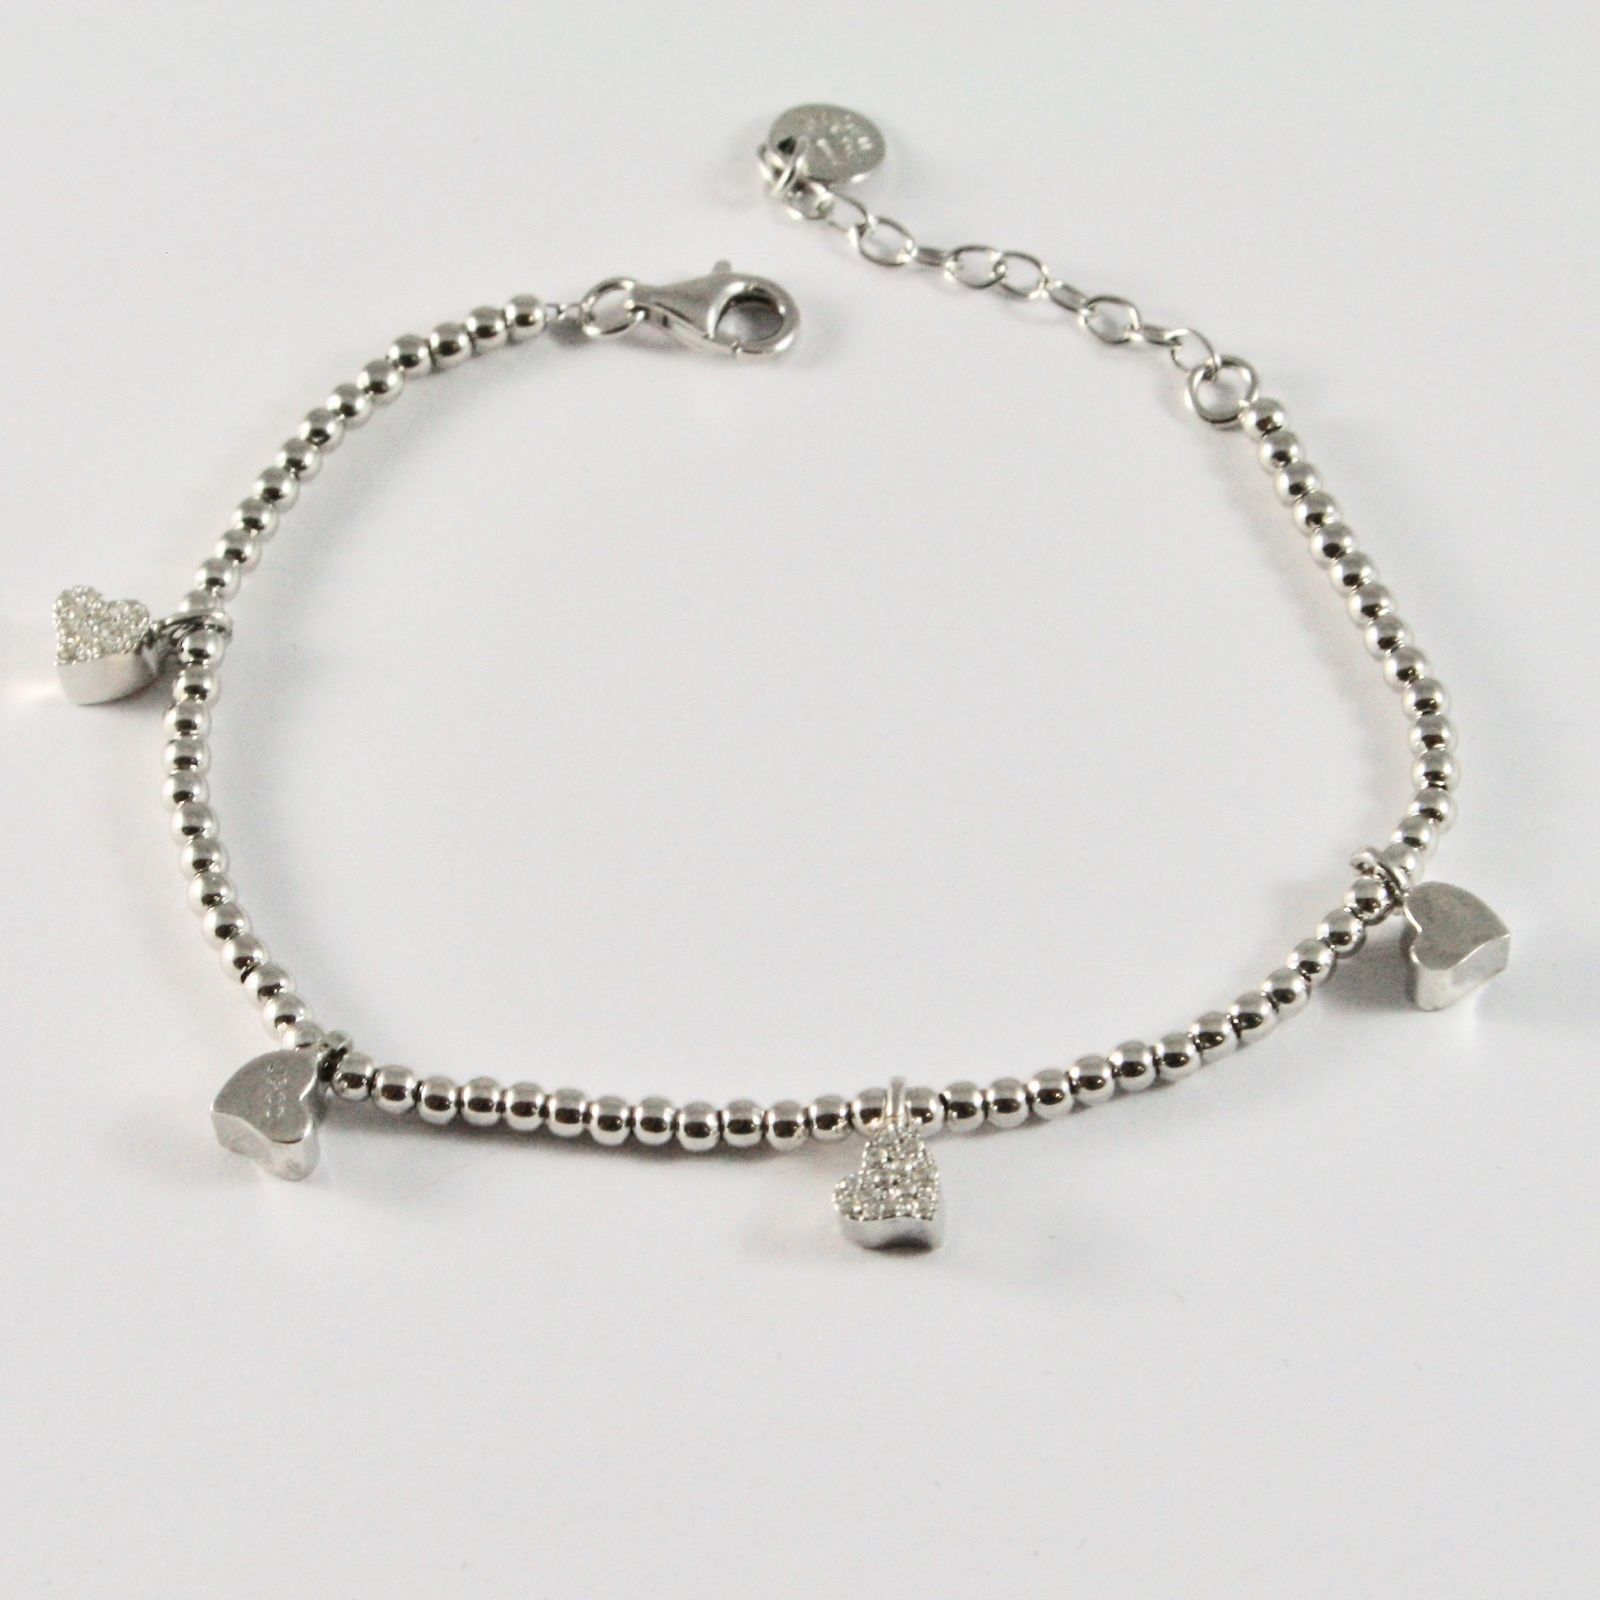 SILVER 925 BRACELET JACK&CO BEAD WITH CHARMS HEARTS WITH ZIRCONS JCB0786